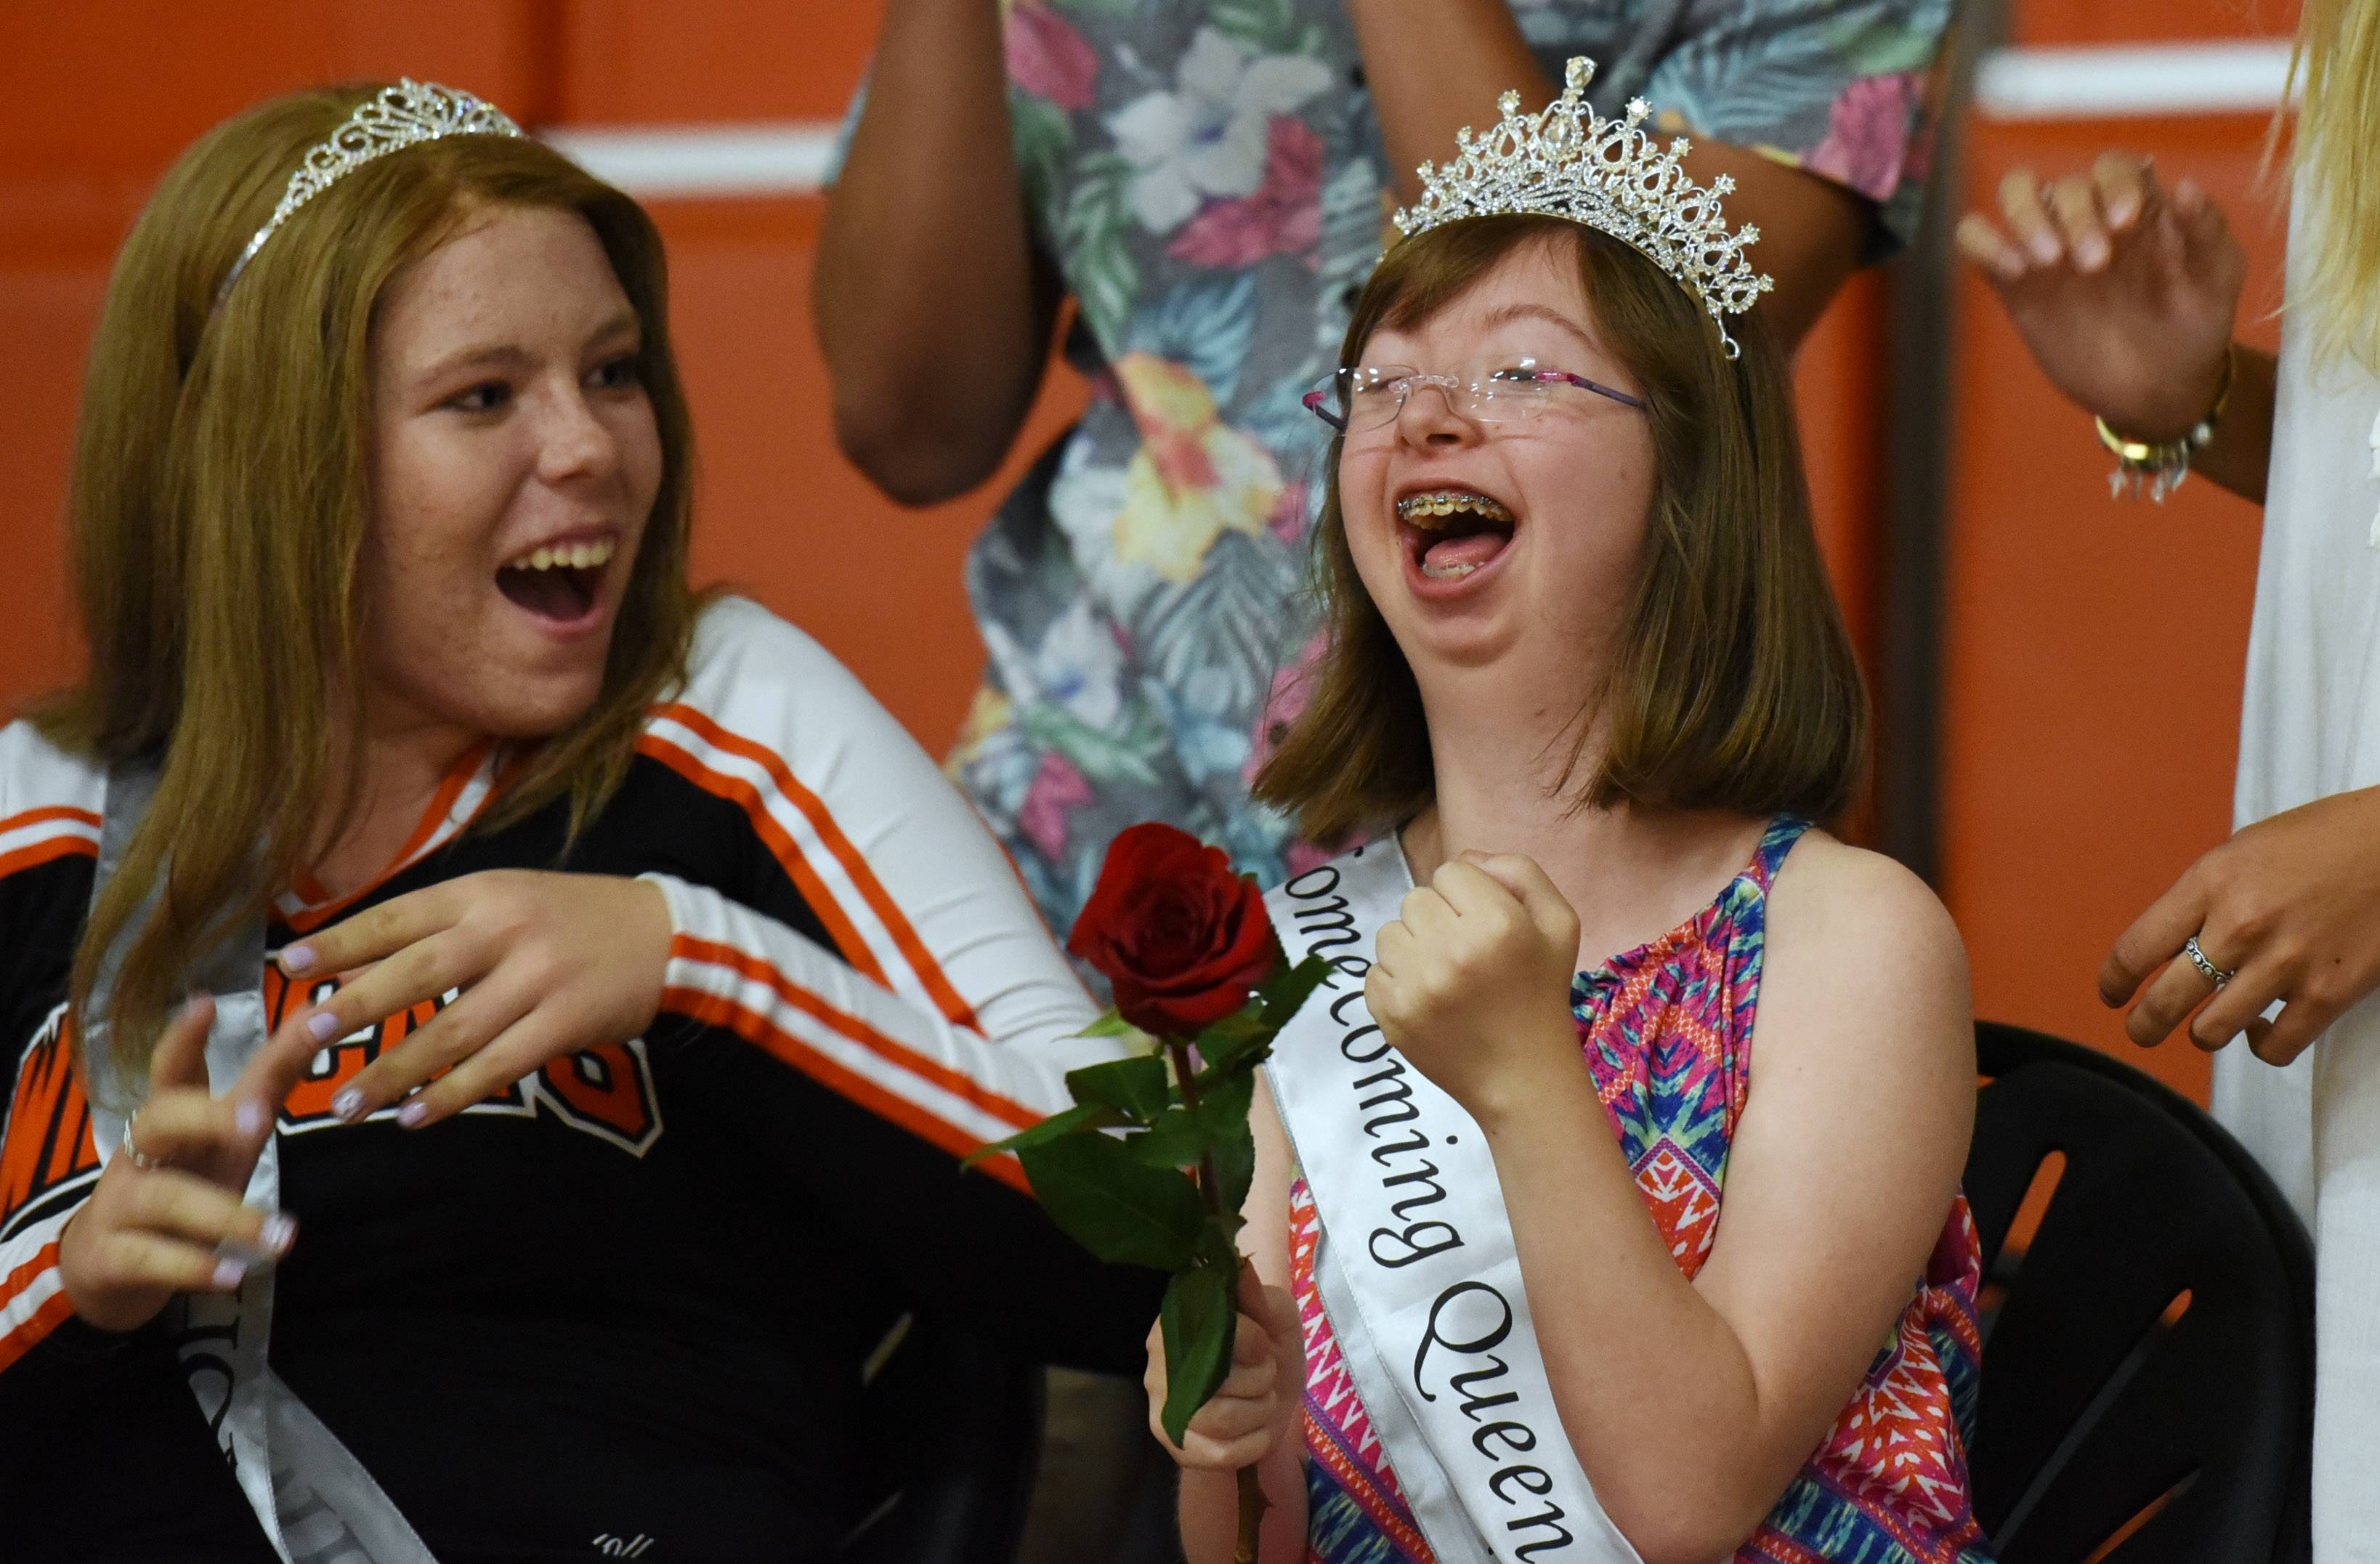 Libertyville High School student Hope Michelotti, right, 18, reacts after being crowned the 2016 homecoming queen Friday as Ashley Junkunc looks on. Students voted live from their phones for their queen during an assembly.